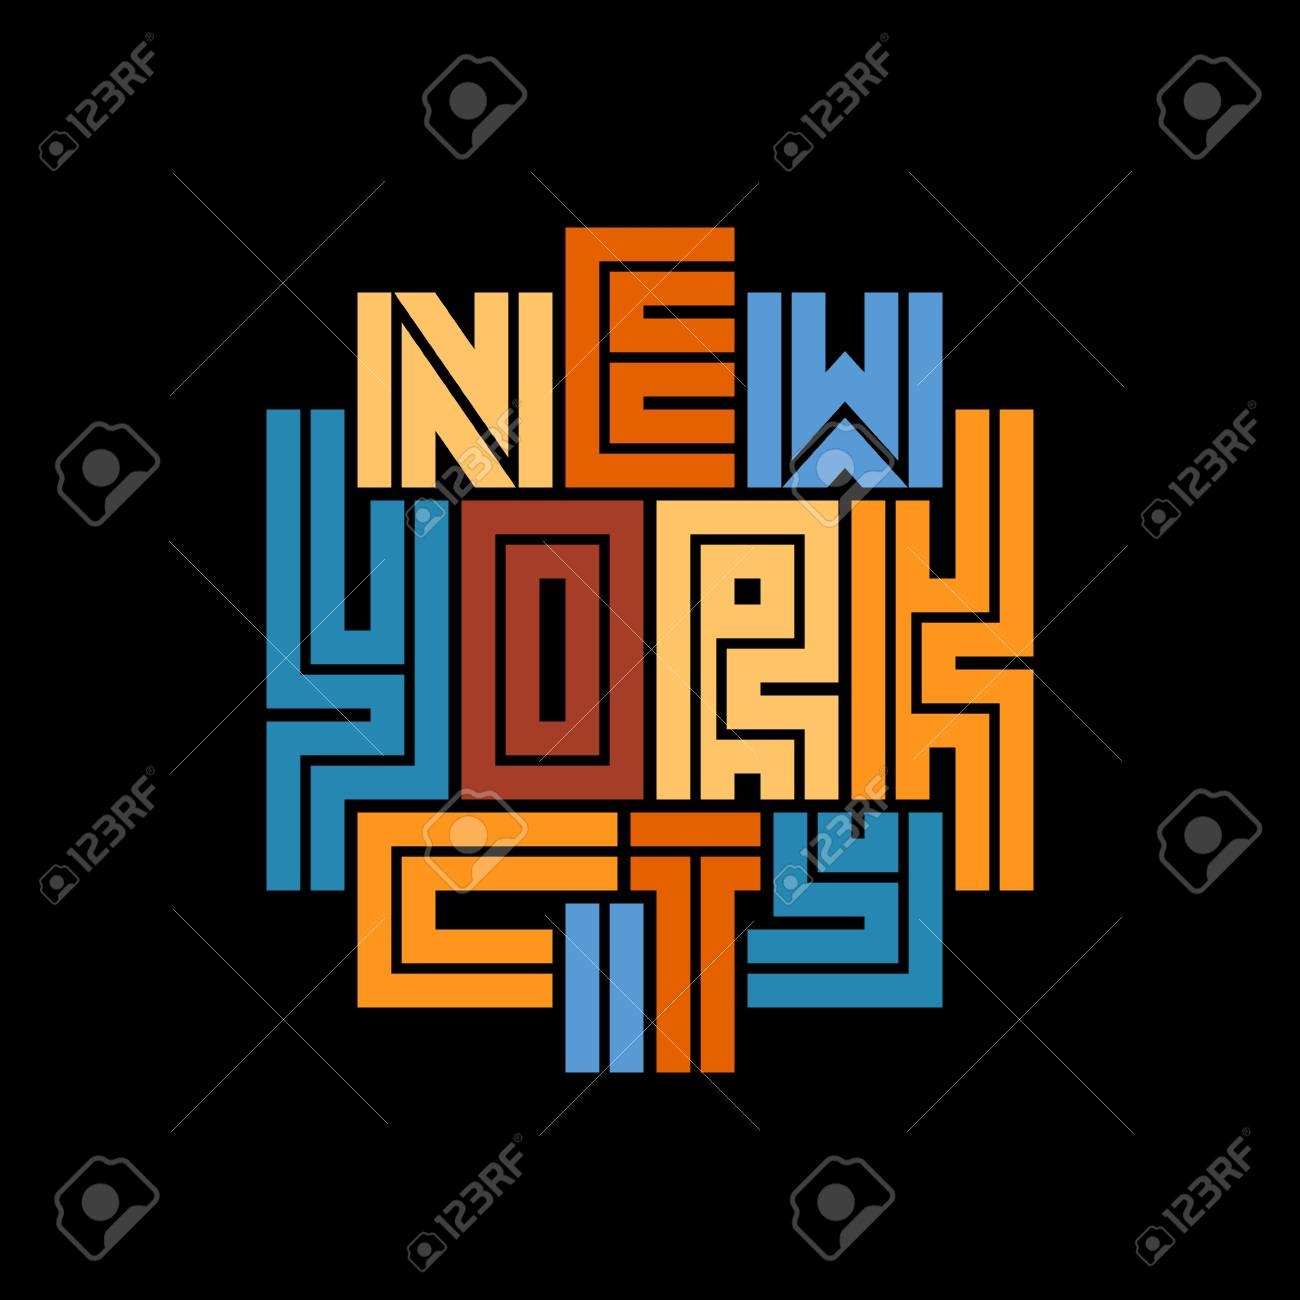 New York City Typography Poster Concept For Print Production Royalty Free Cliparts Vectors And Stock Illustration Image 97271091